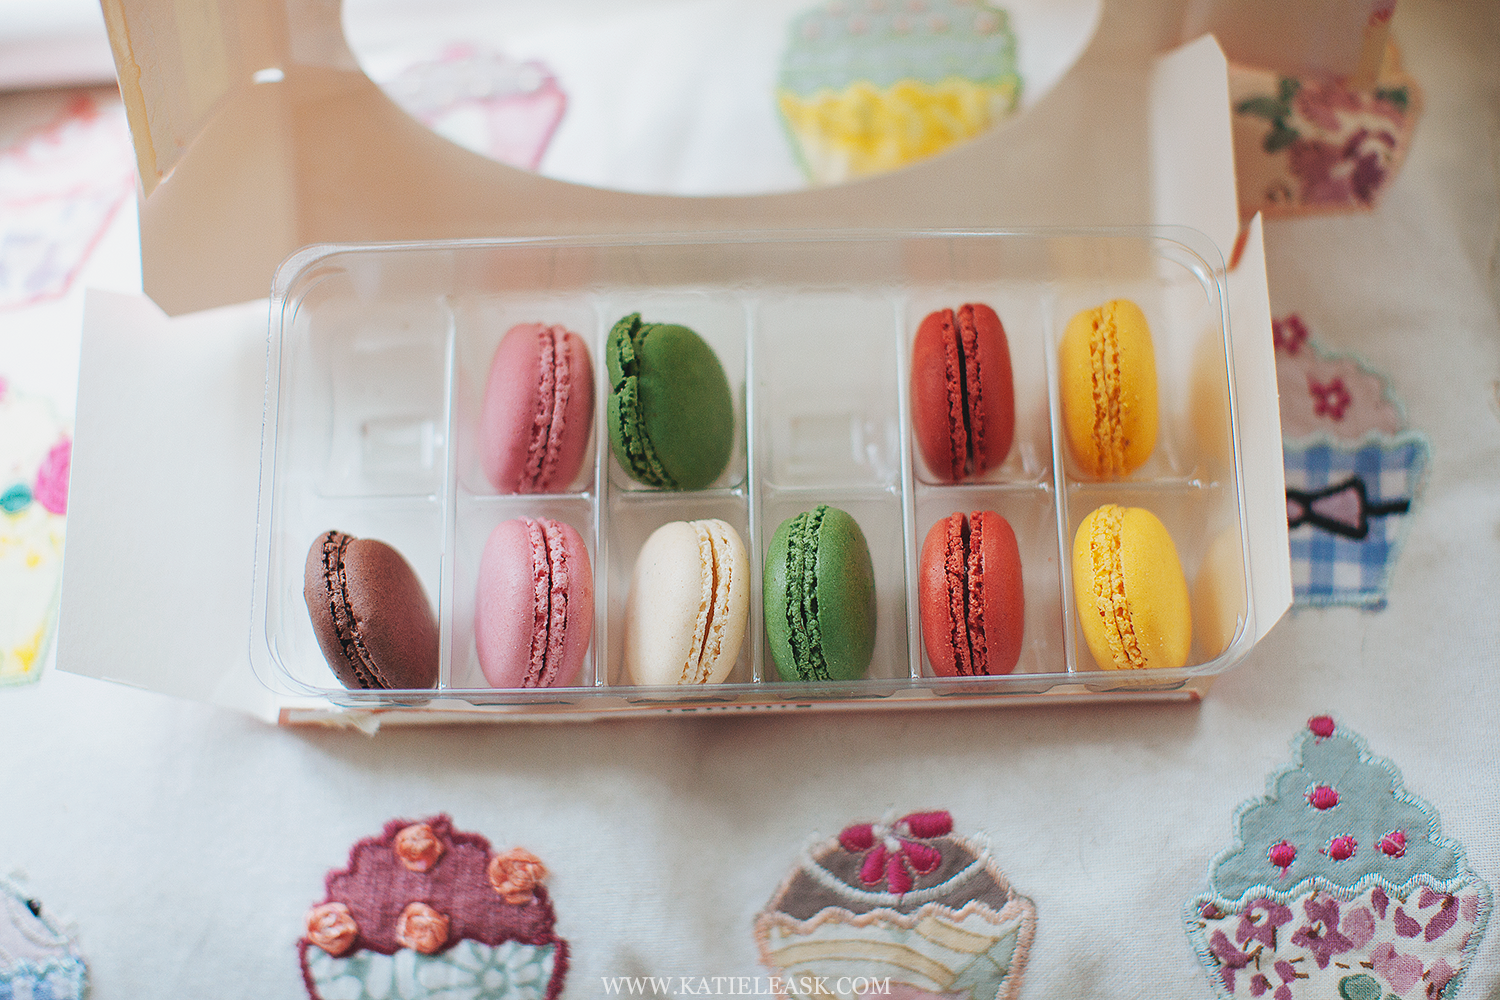 Macarons-and-Flowers-Katie-Leask-Photography-004-SL